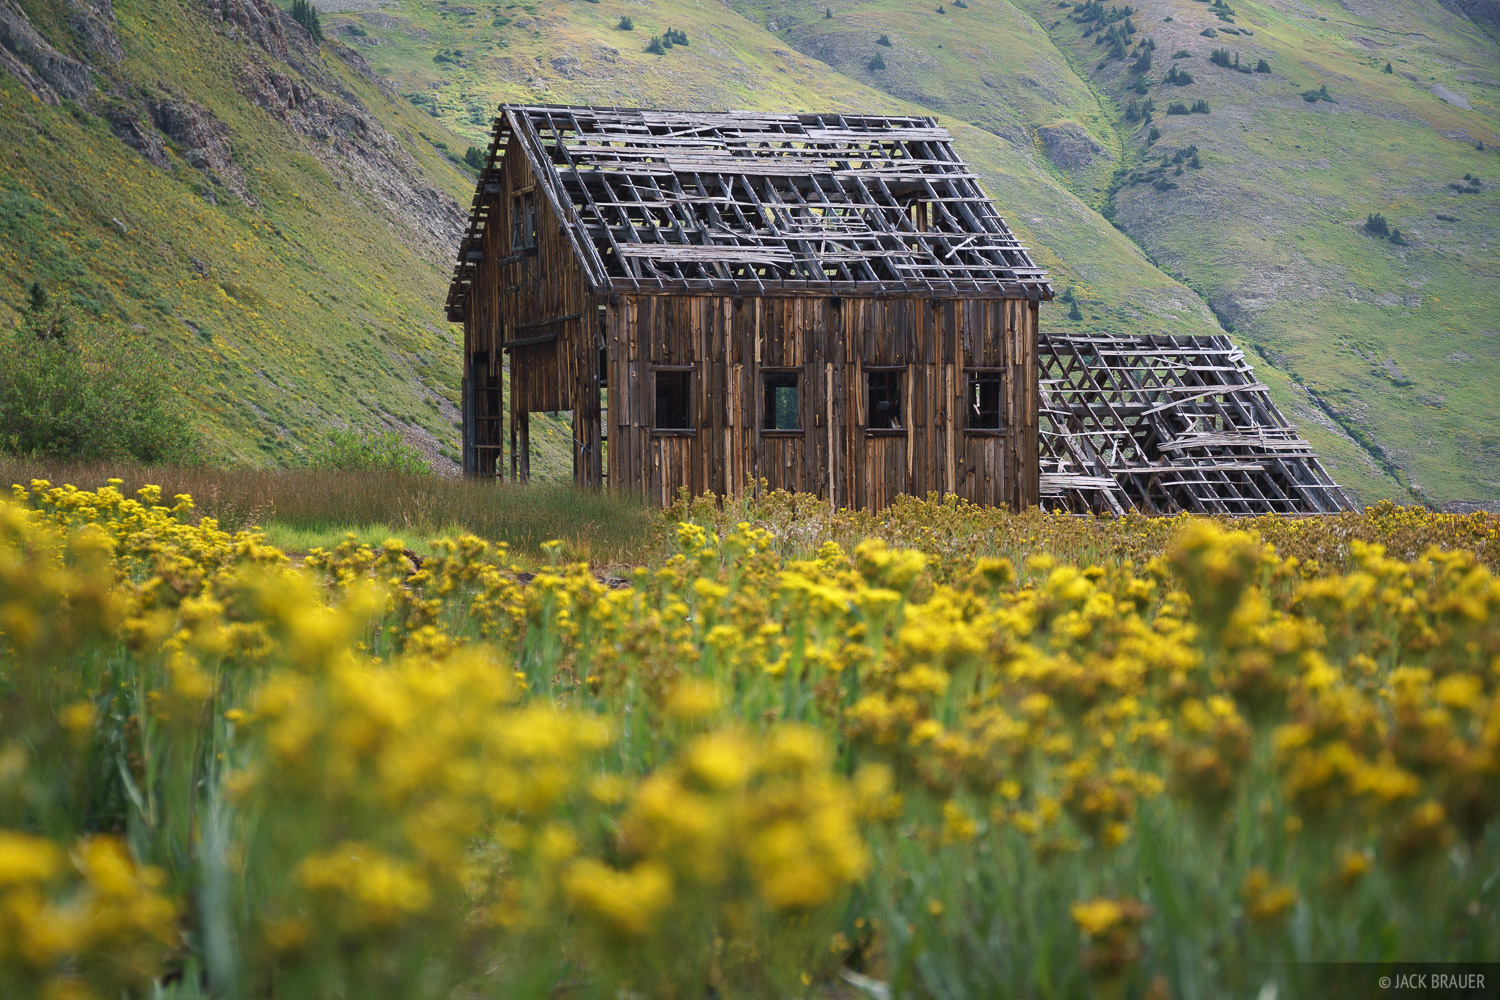 A dilapidated mine ruin in California Gulch above the mining ghost town of Animas Forks (up valley from Silverton).